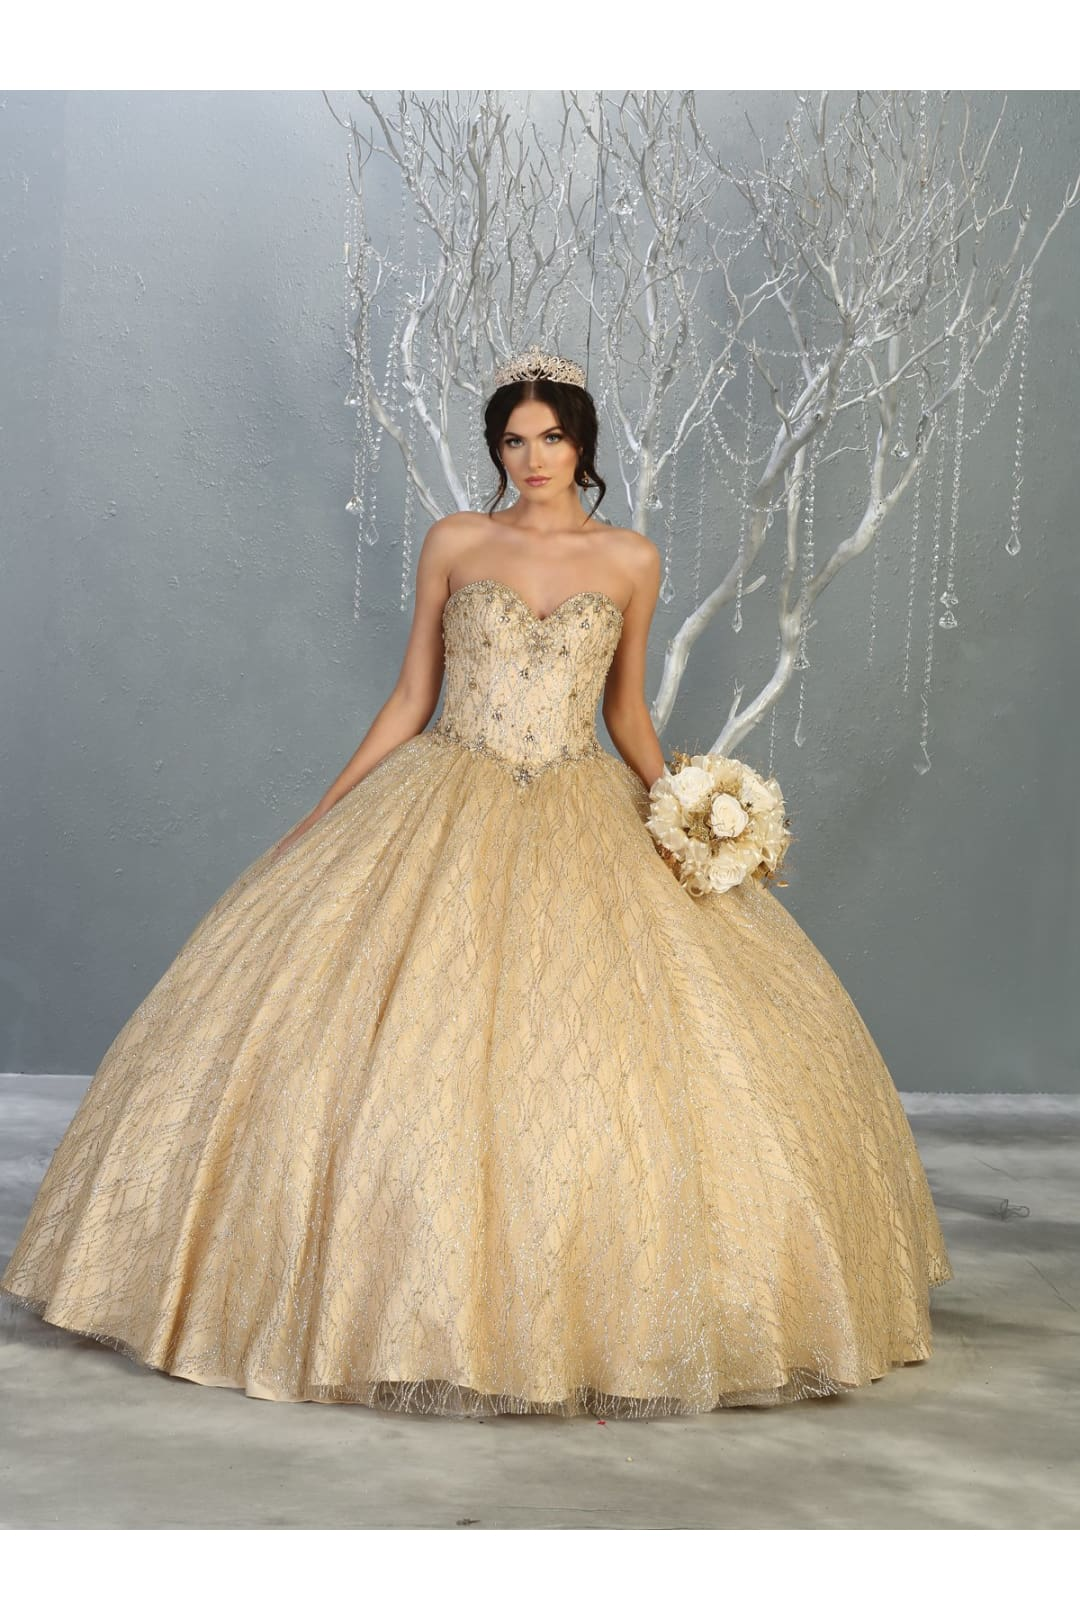 Sweetheart Ball Gown - Champagne/Gold / 2